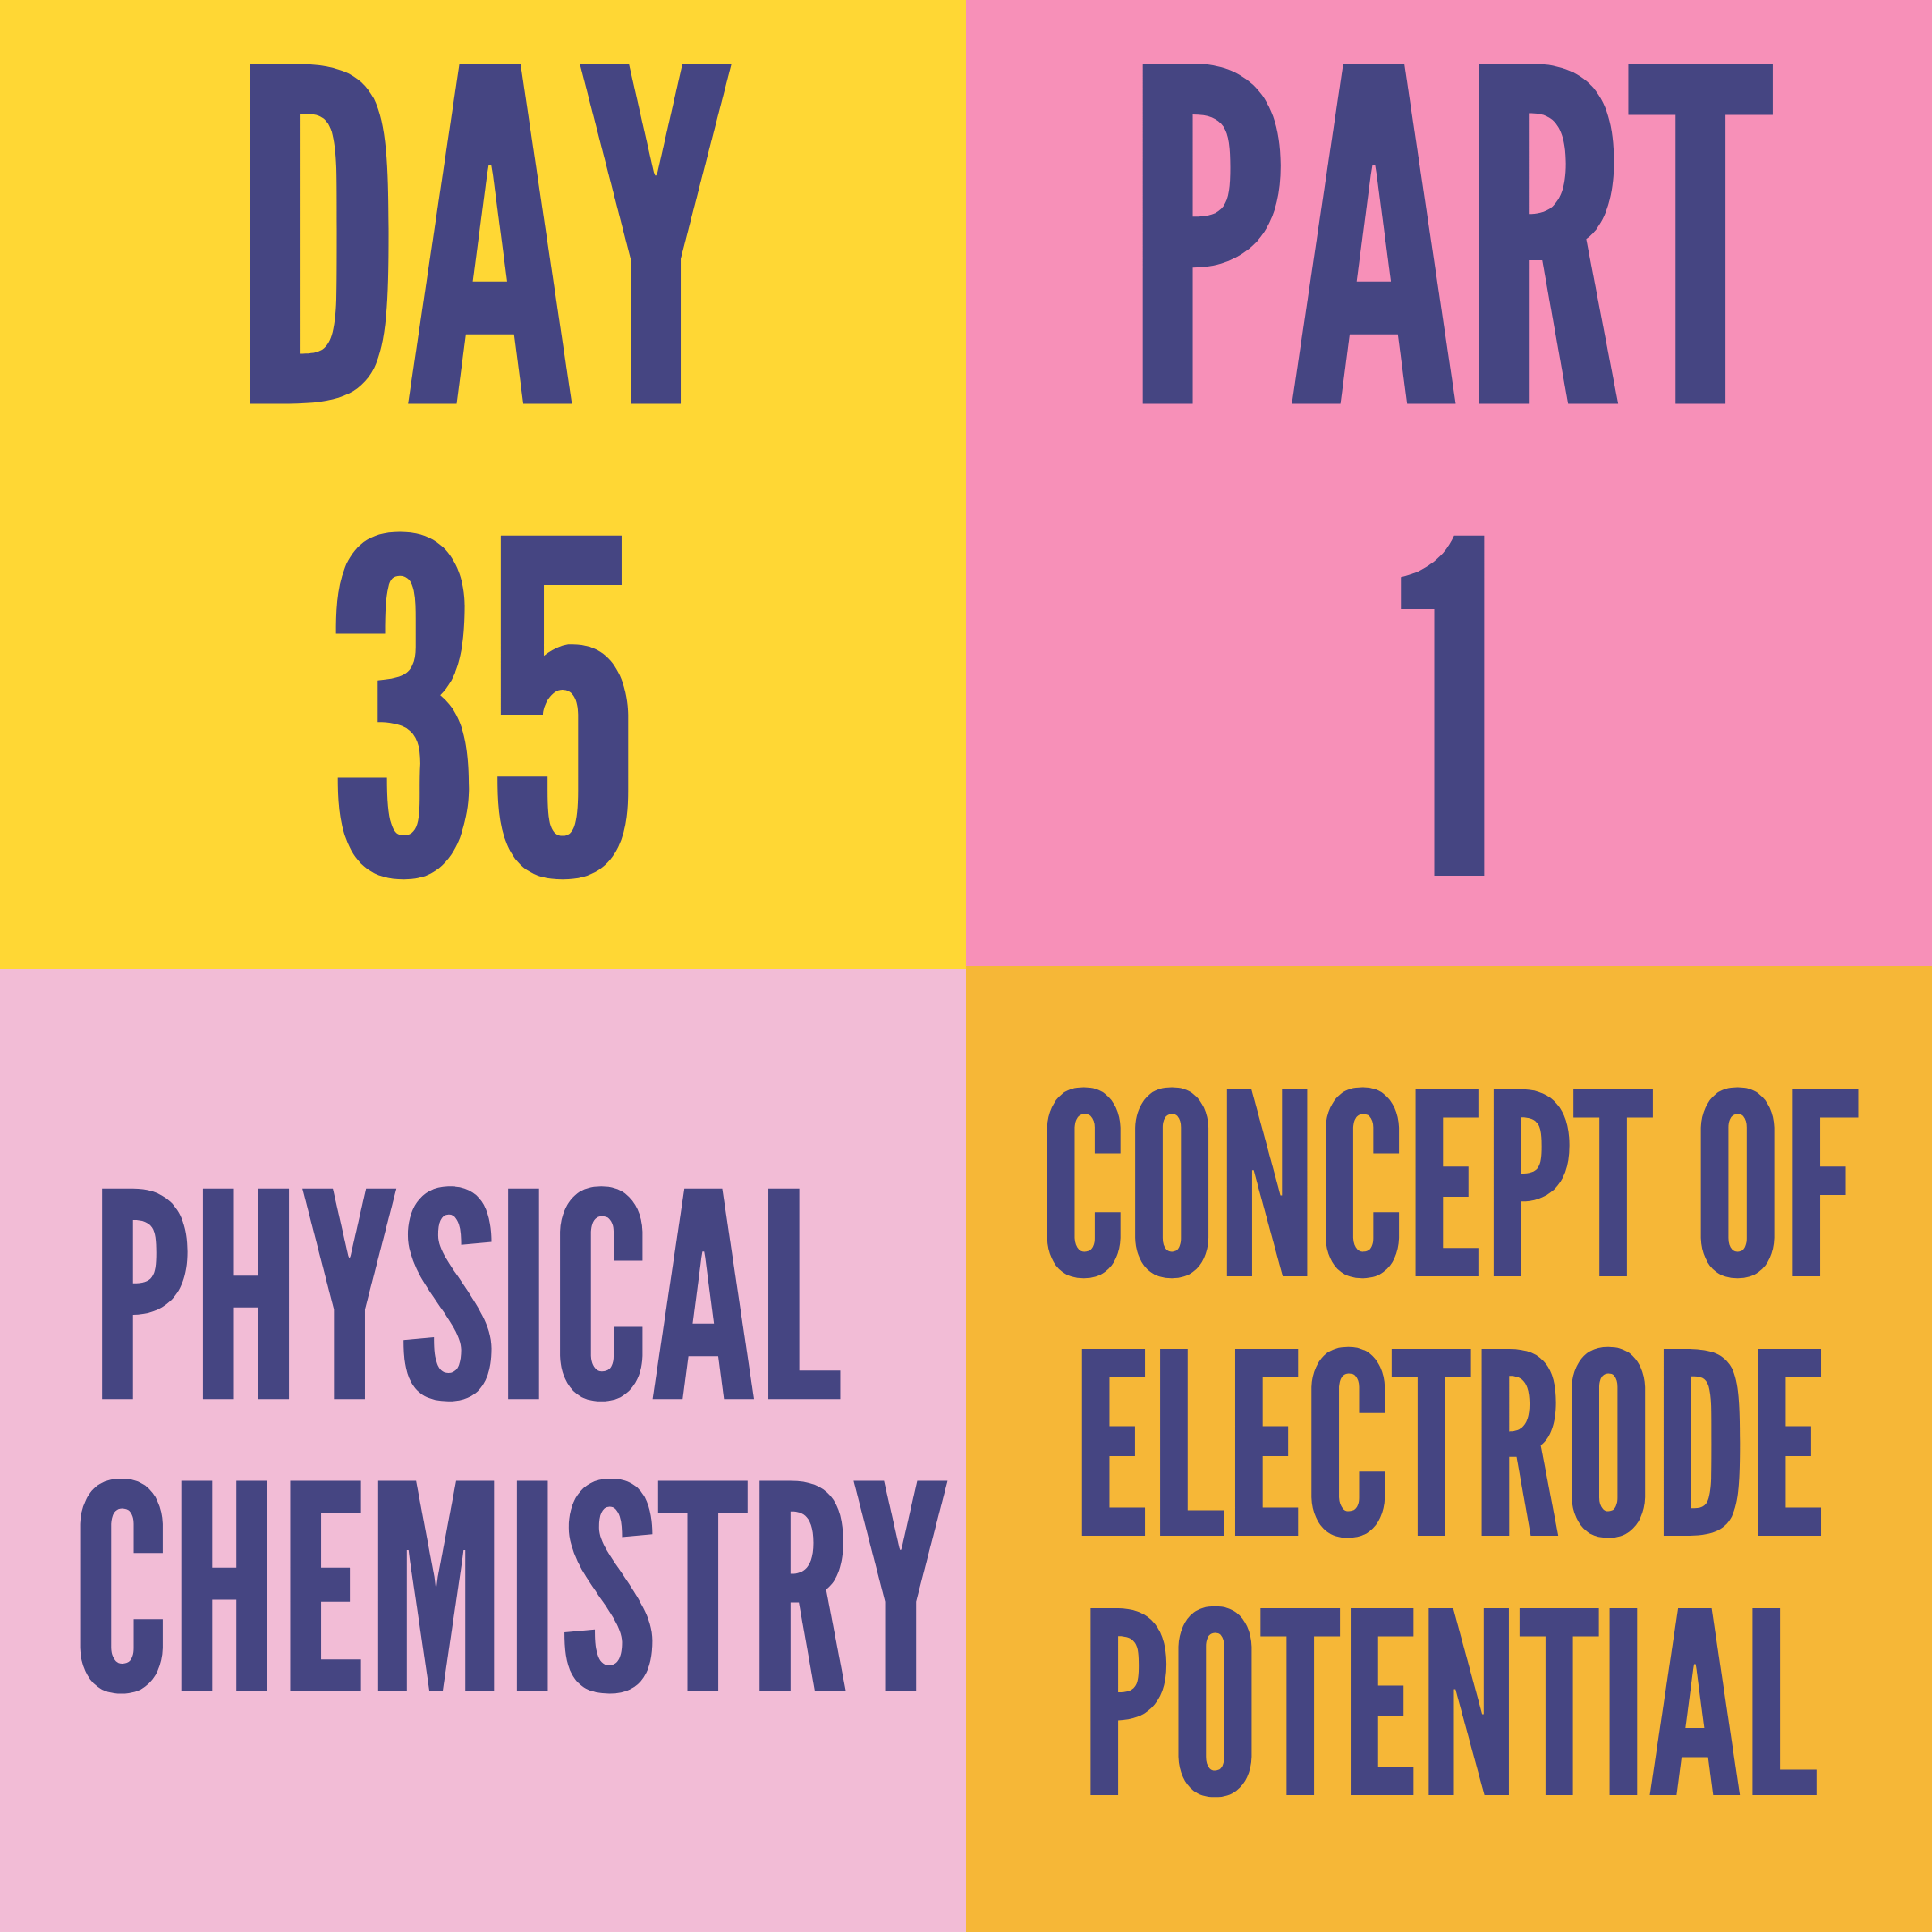 DAY-35 PART-1 CONCEPT OF ELECTRODE POTENTIAL